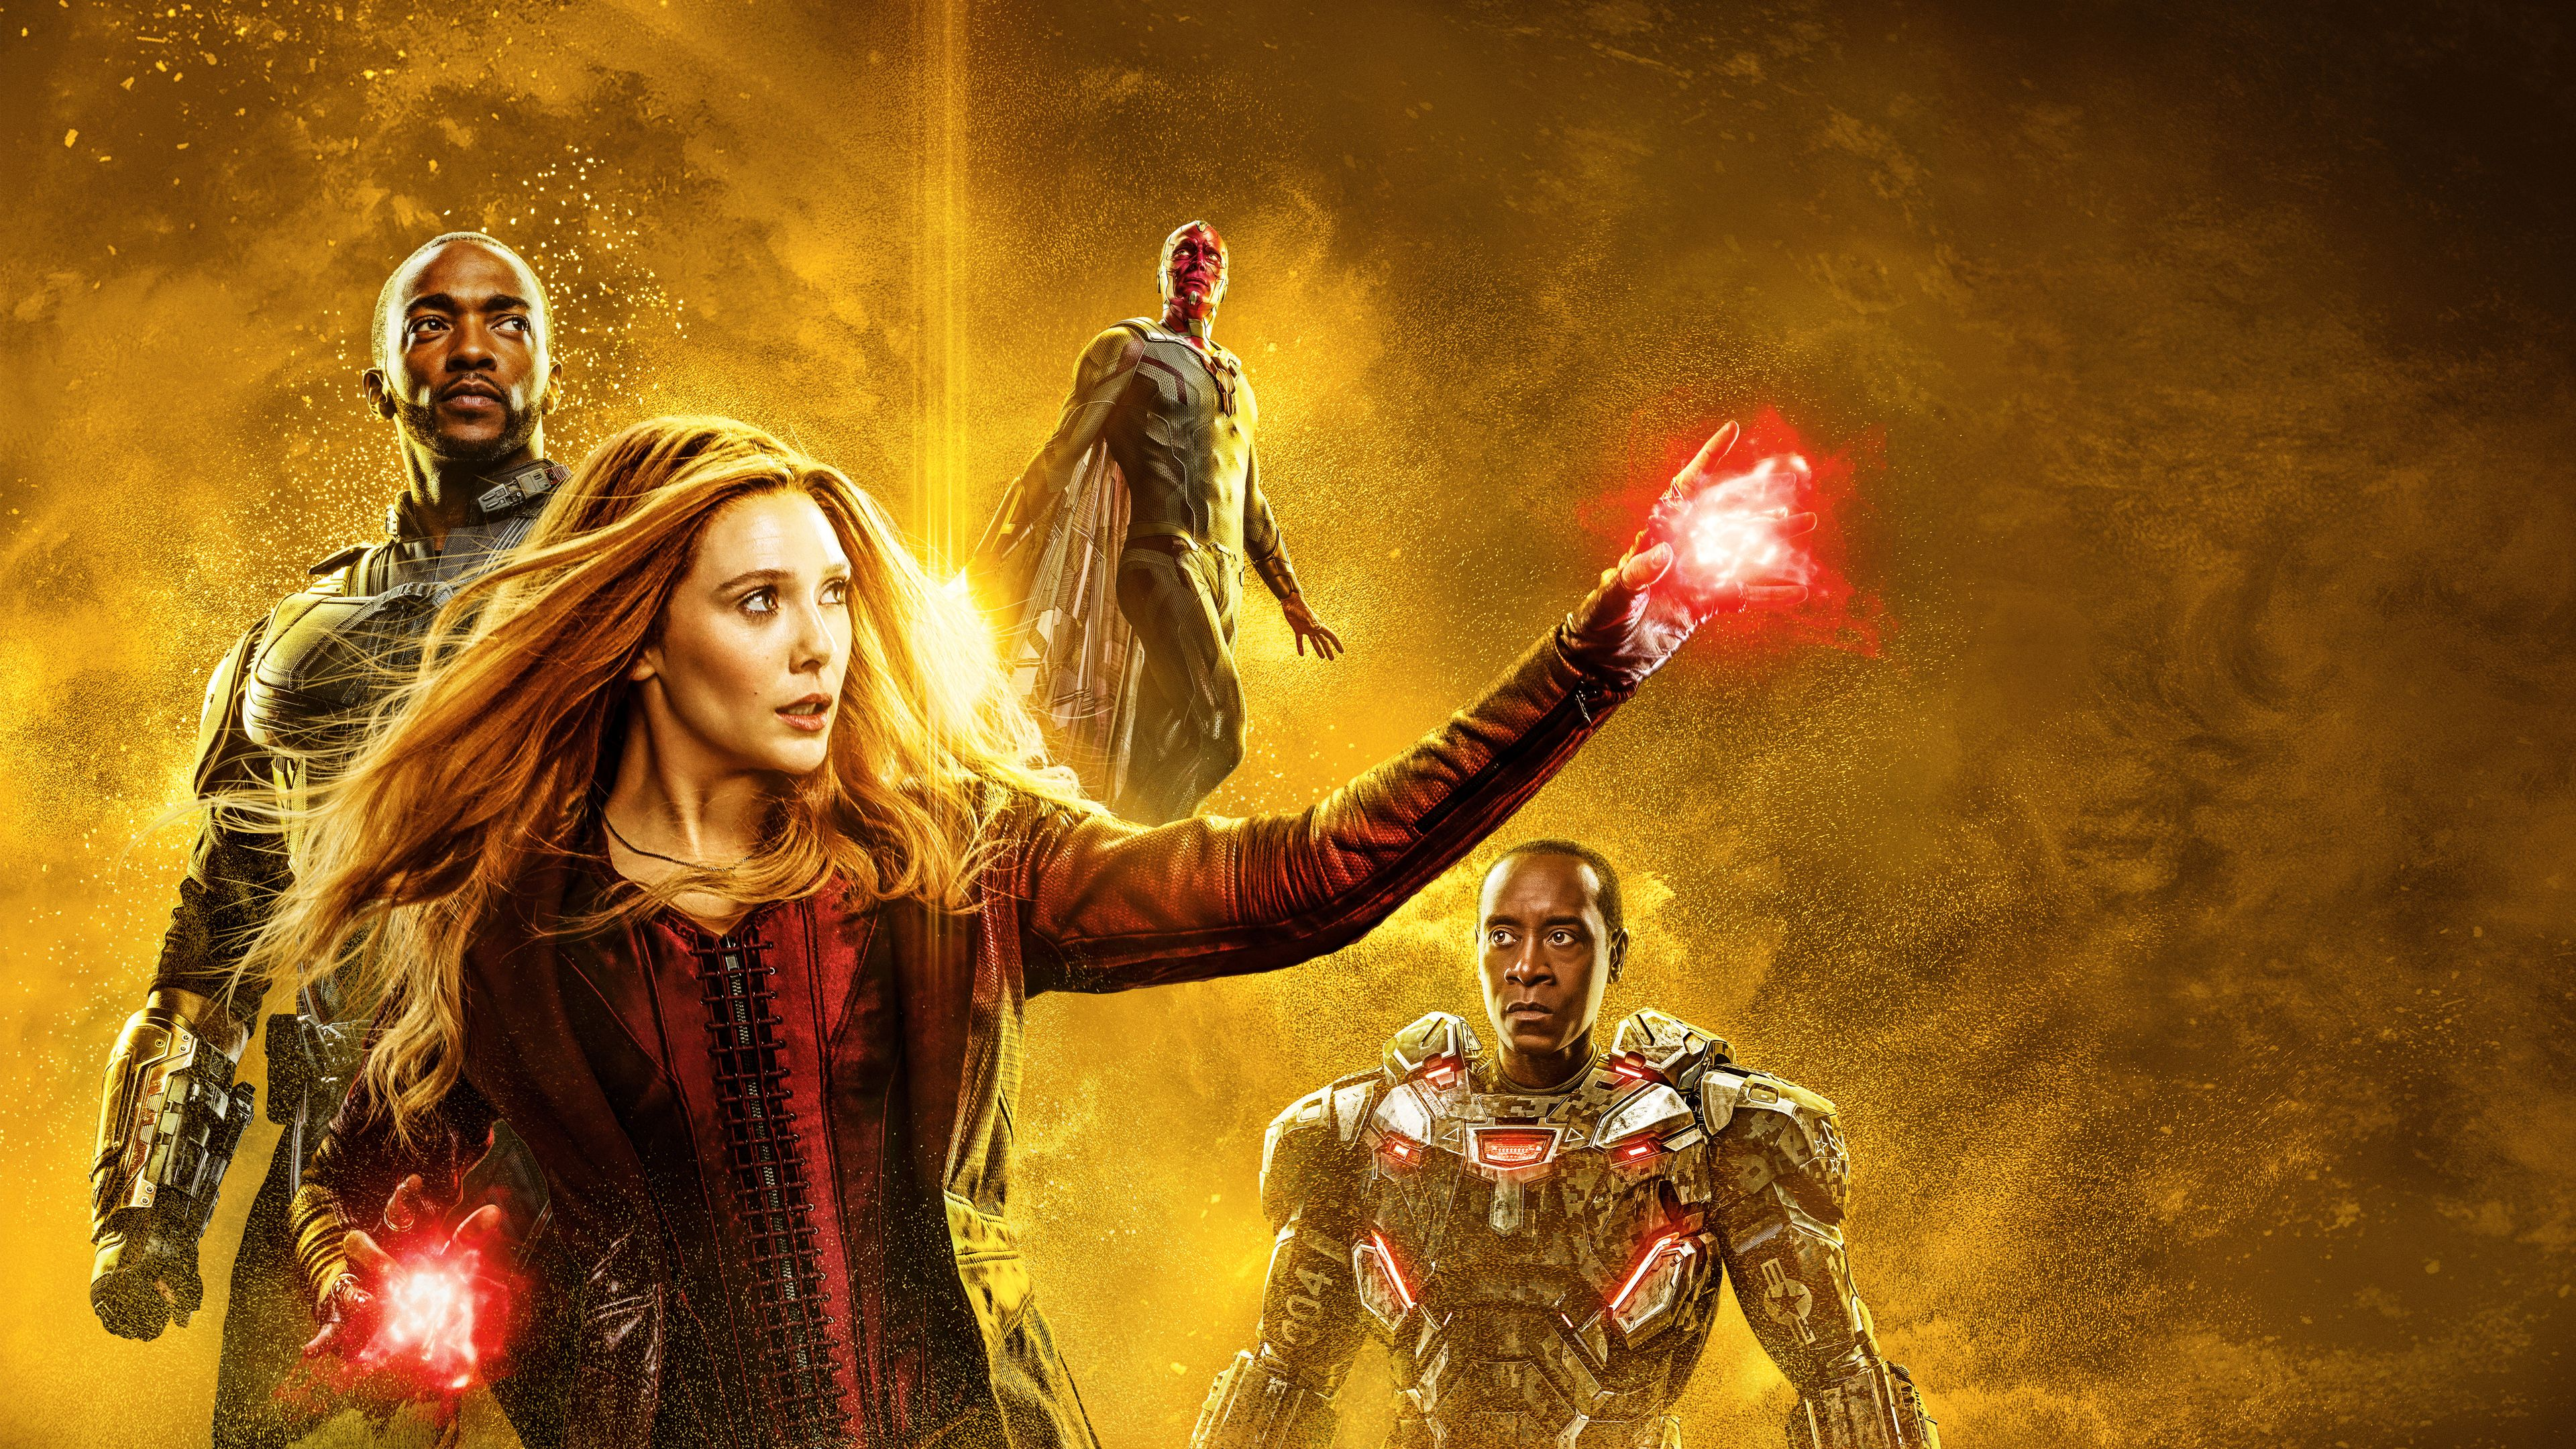 Avengers Infinity War Mind Stone Poster 4k War Machine Wallpapers Wanda Maximoff Wallpapers Vision W Scarlet Witch Marvel Scarlet Witch Avengers Infinity War